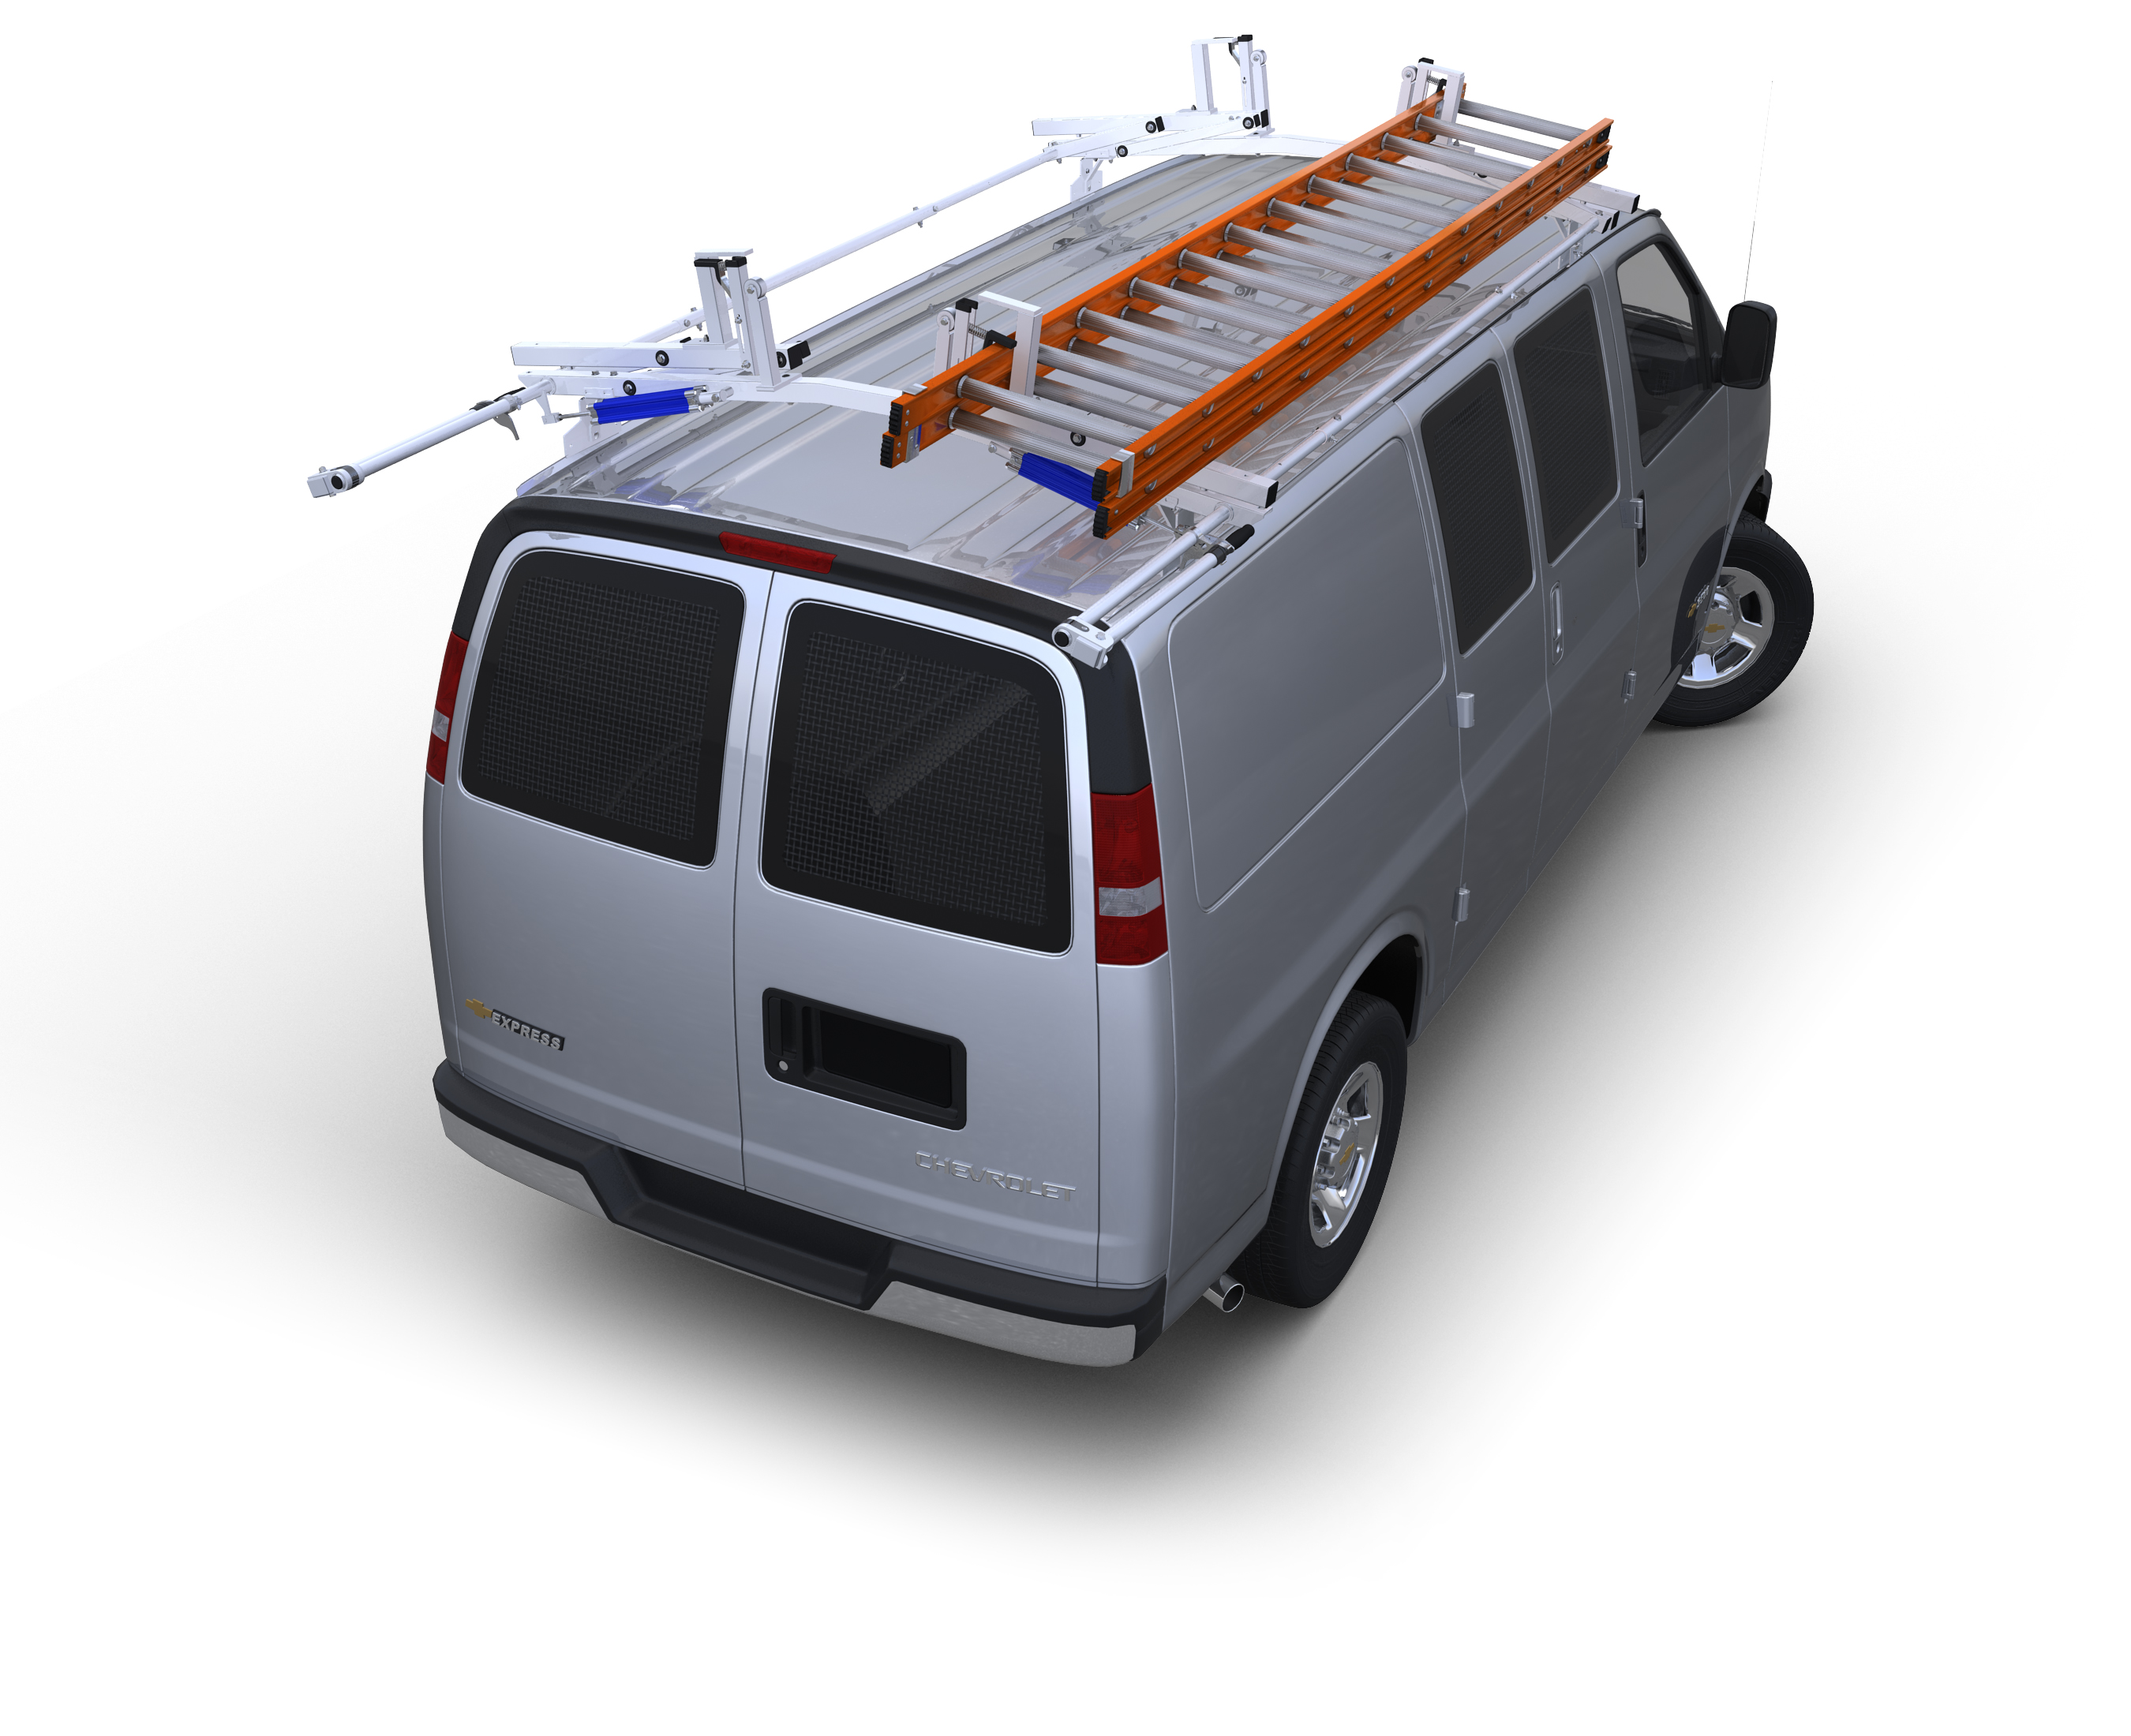 Slick Locks Hasp Locking System Cargo Van Security Door